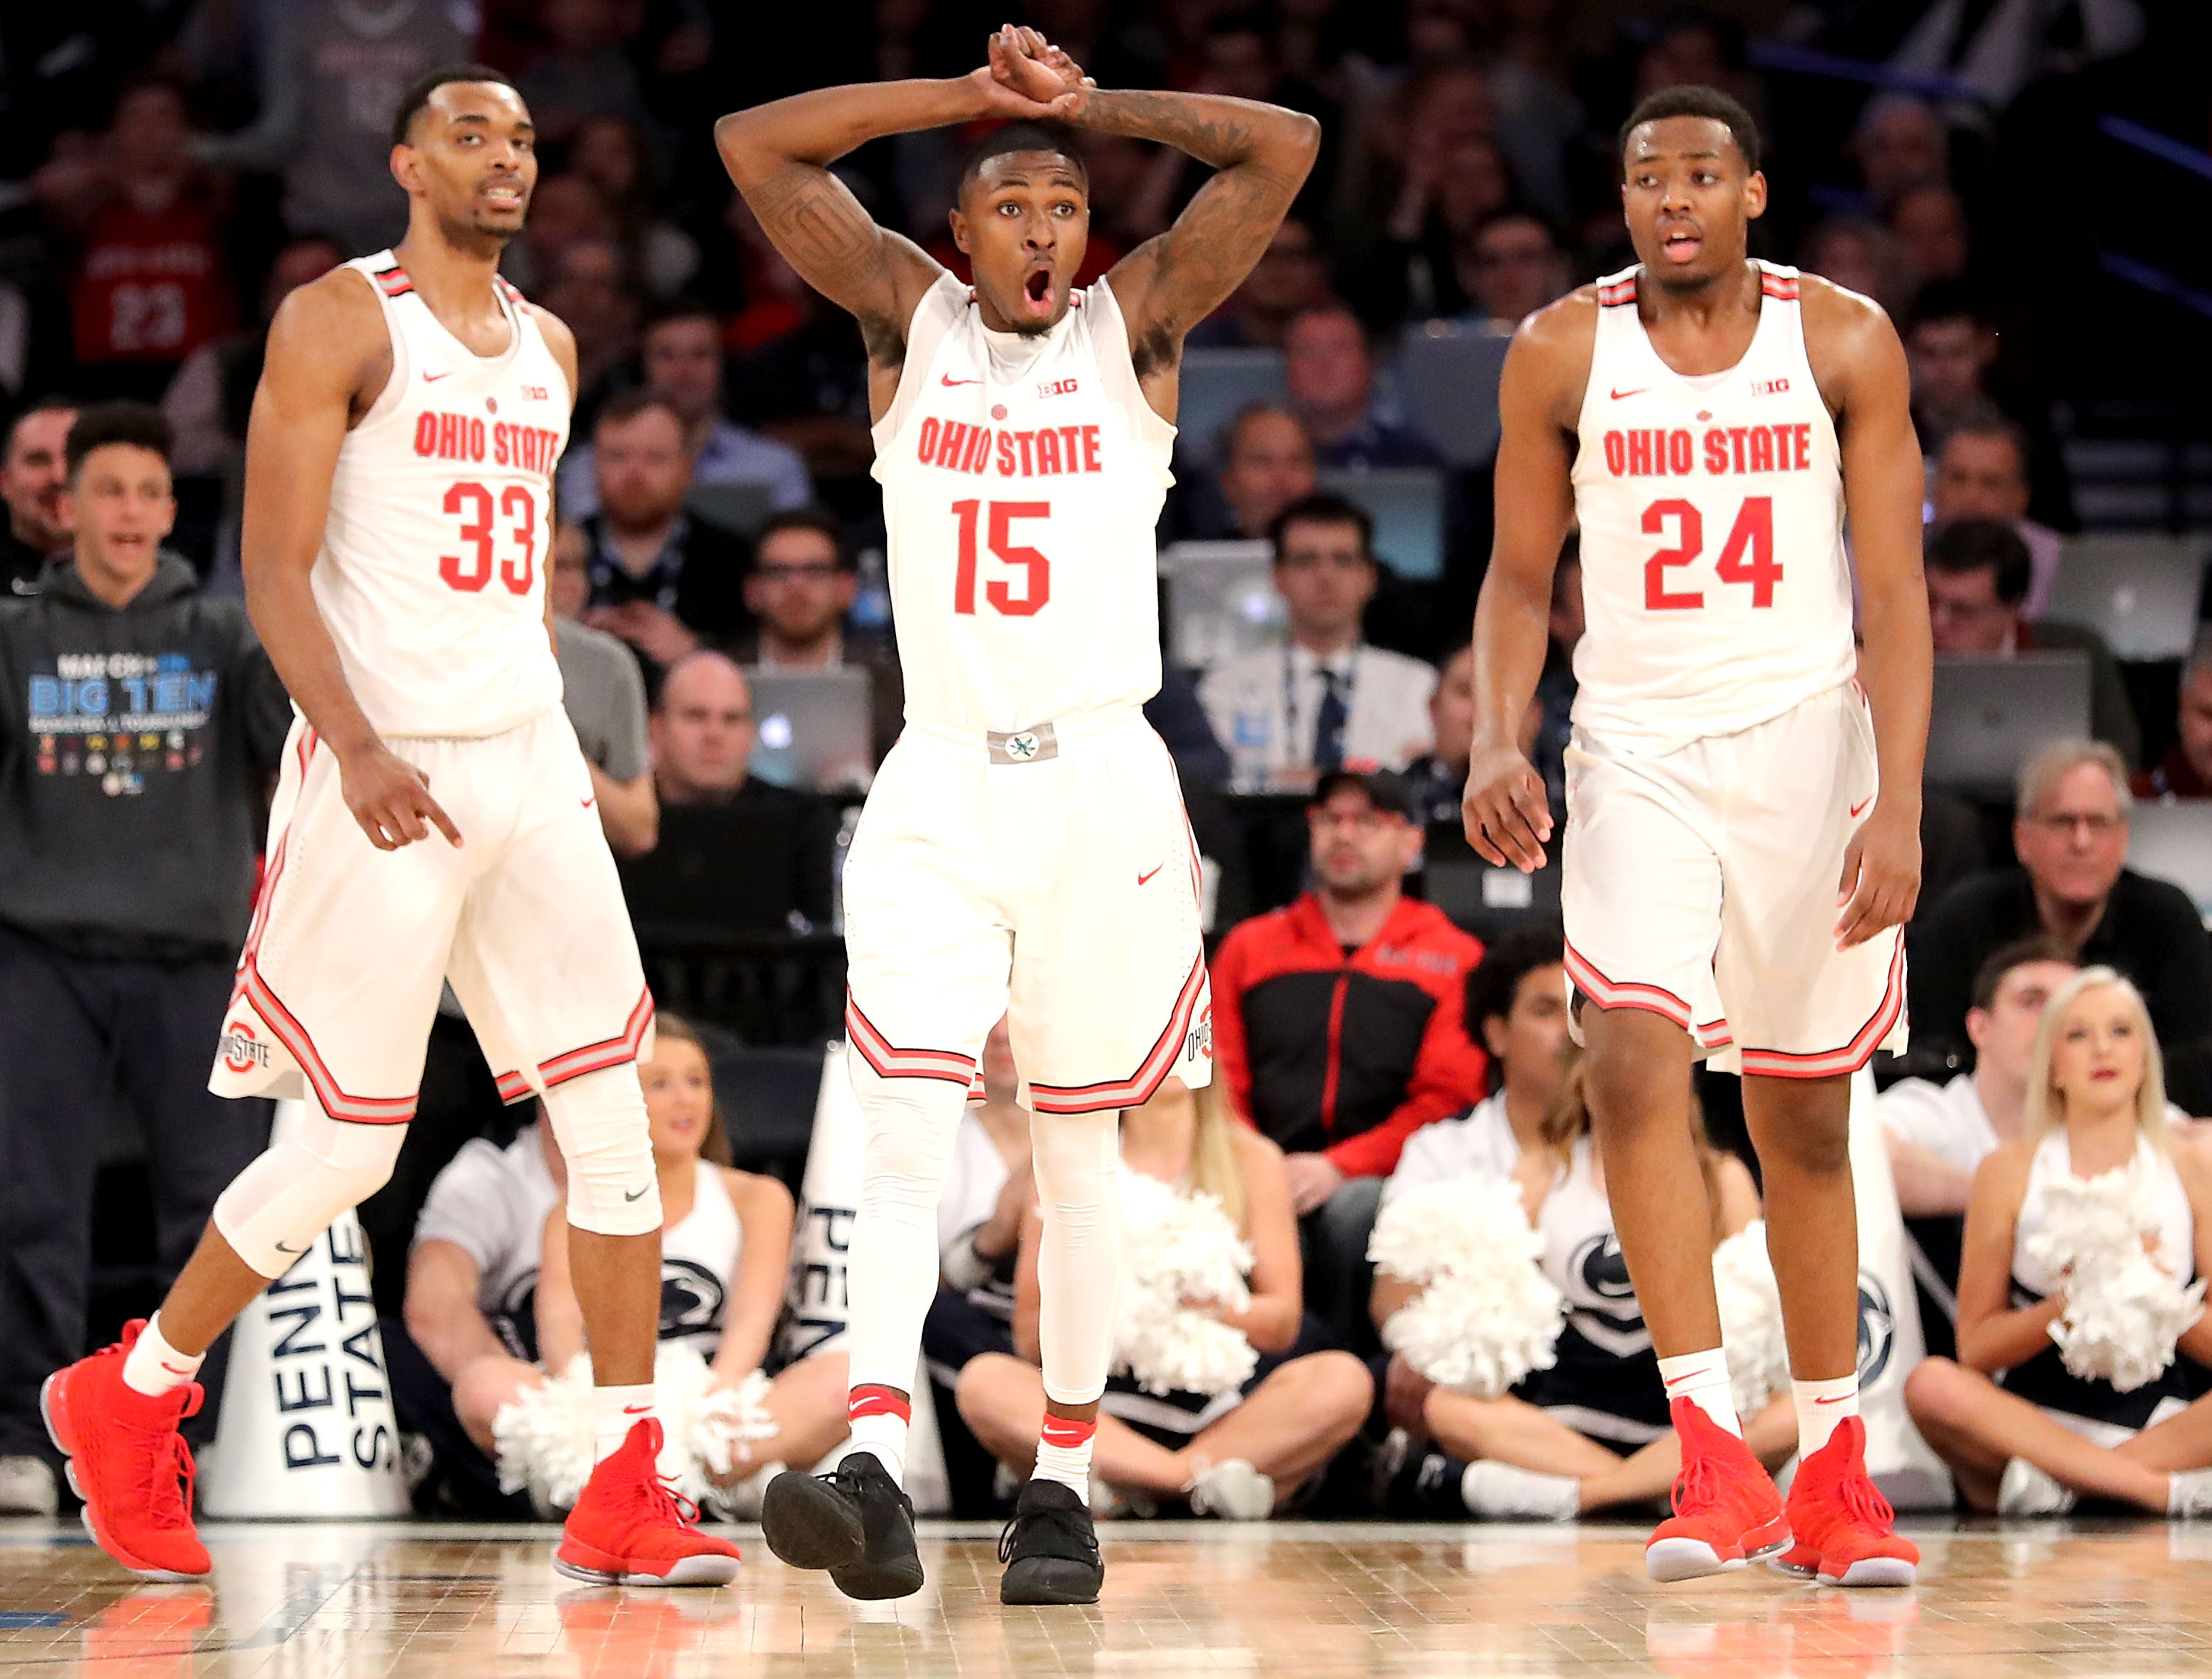 Ohio State Basketball: Good First Round Matchup For The